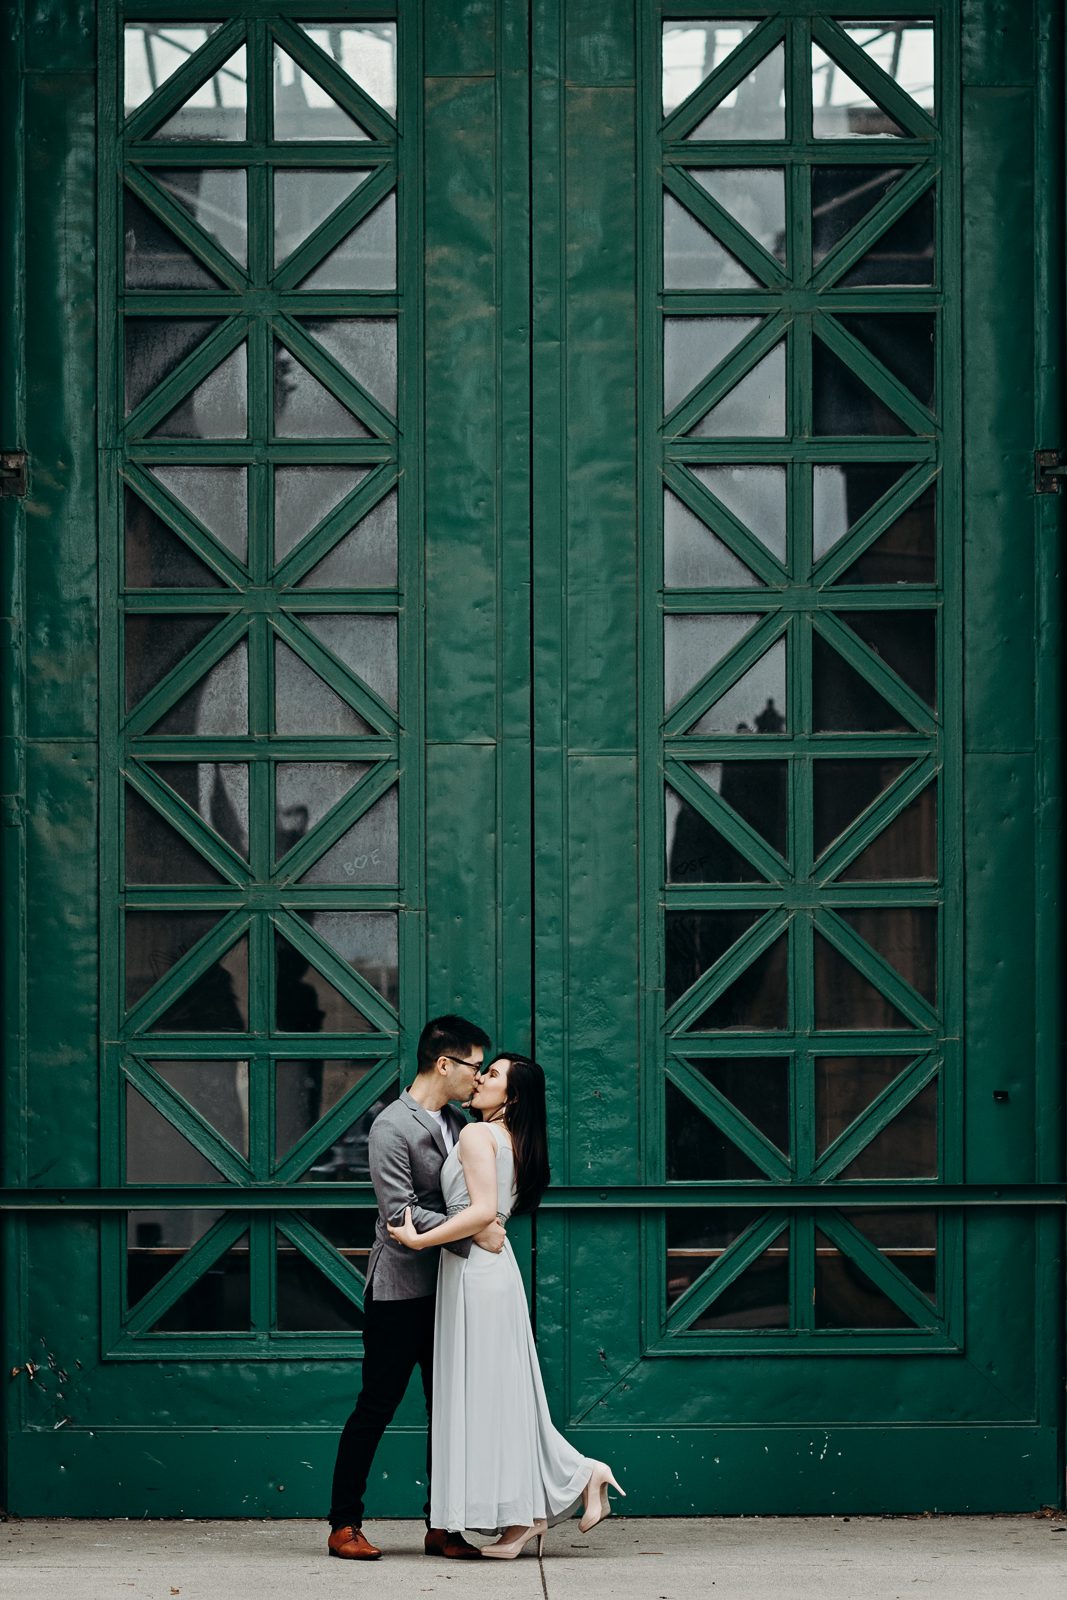 Engaged couple kisses in front of a tall green door at Palace of Fine Arts. Theatre in San Francisco, CA.